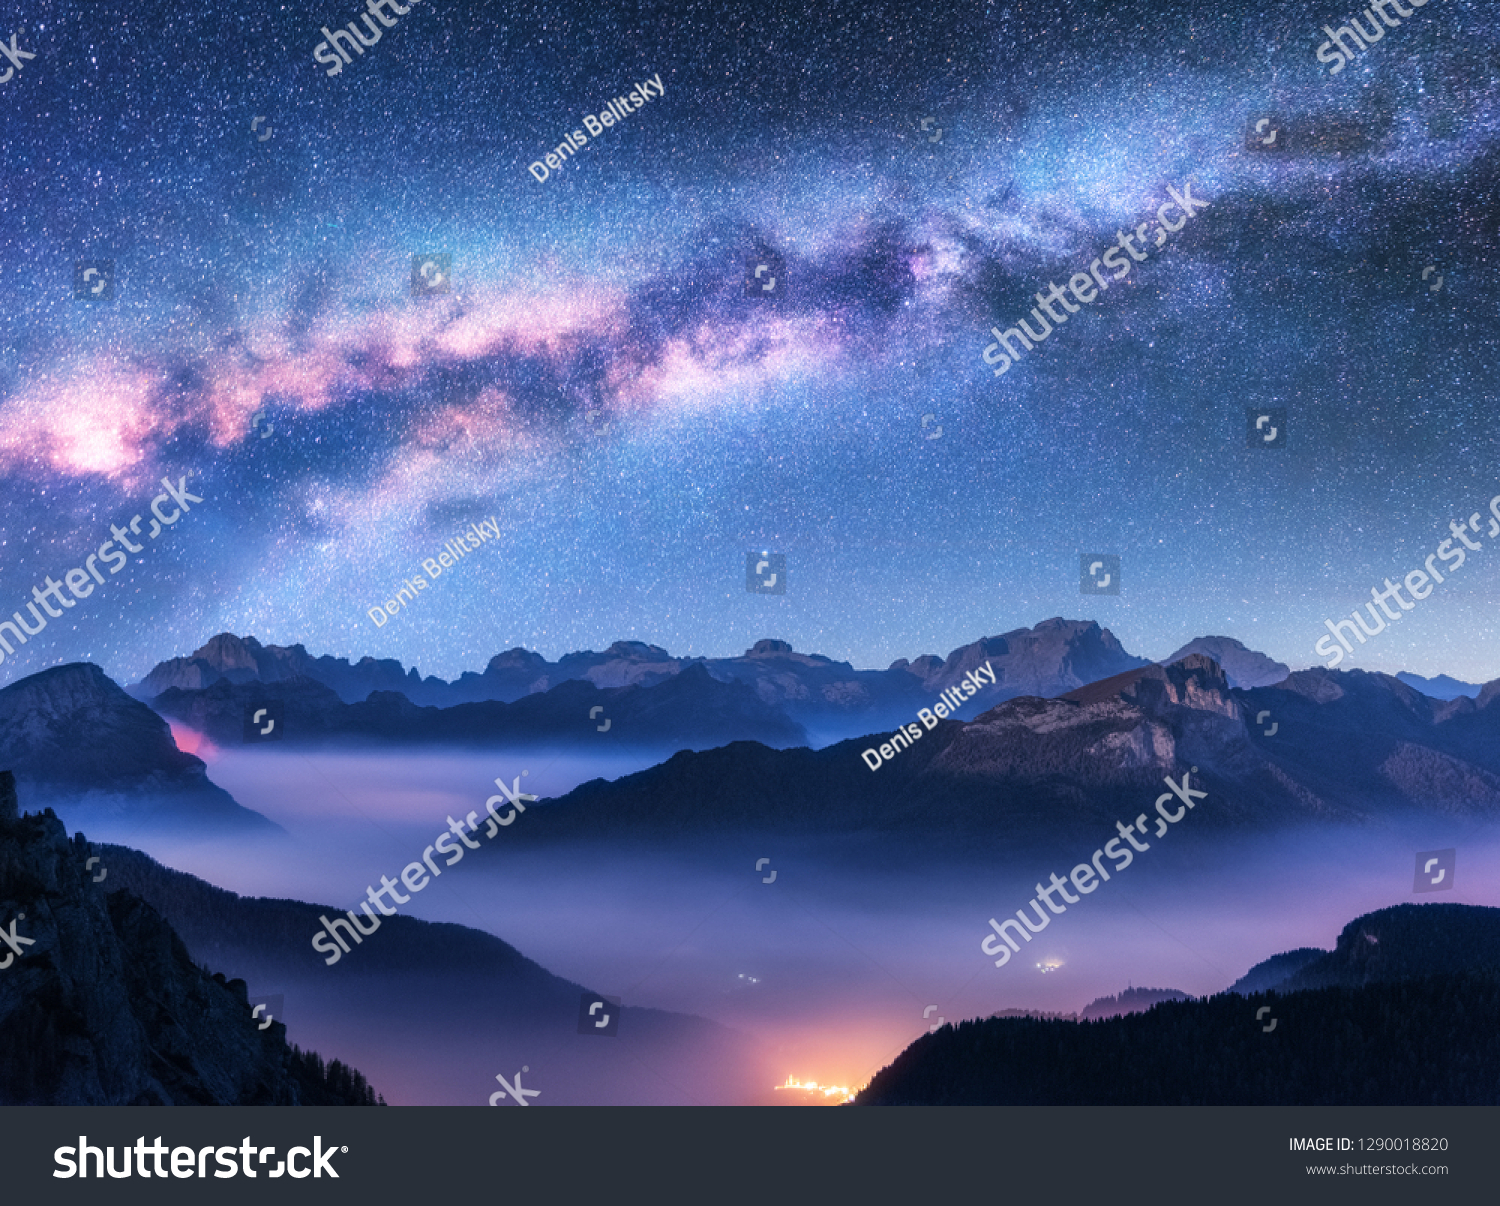 Milky Way above mountains in fog at night in autumn. Landscape with alpine mountain valley, low clouds, purple starry sky with milky way, city illumination. Aerial. Passo Giau, Dolomites, Italy. Space #1290018820